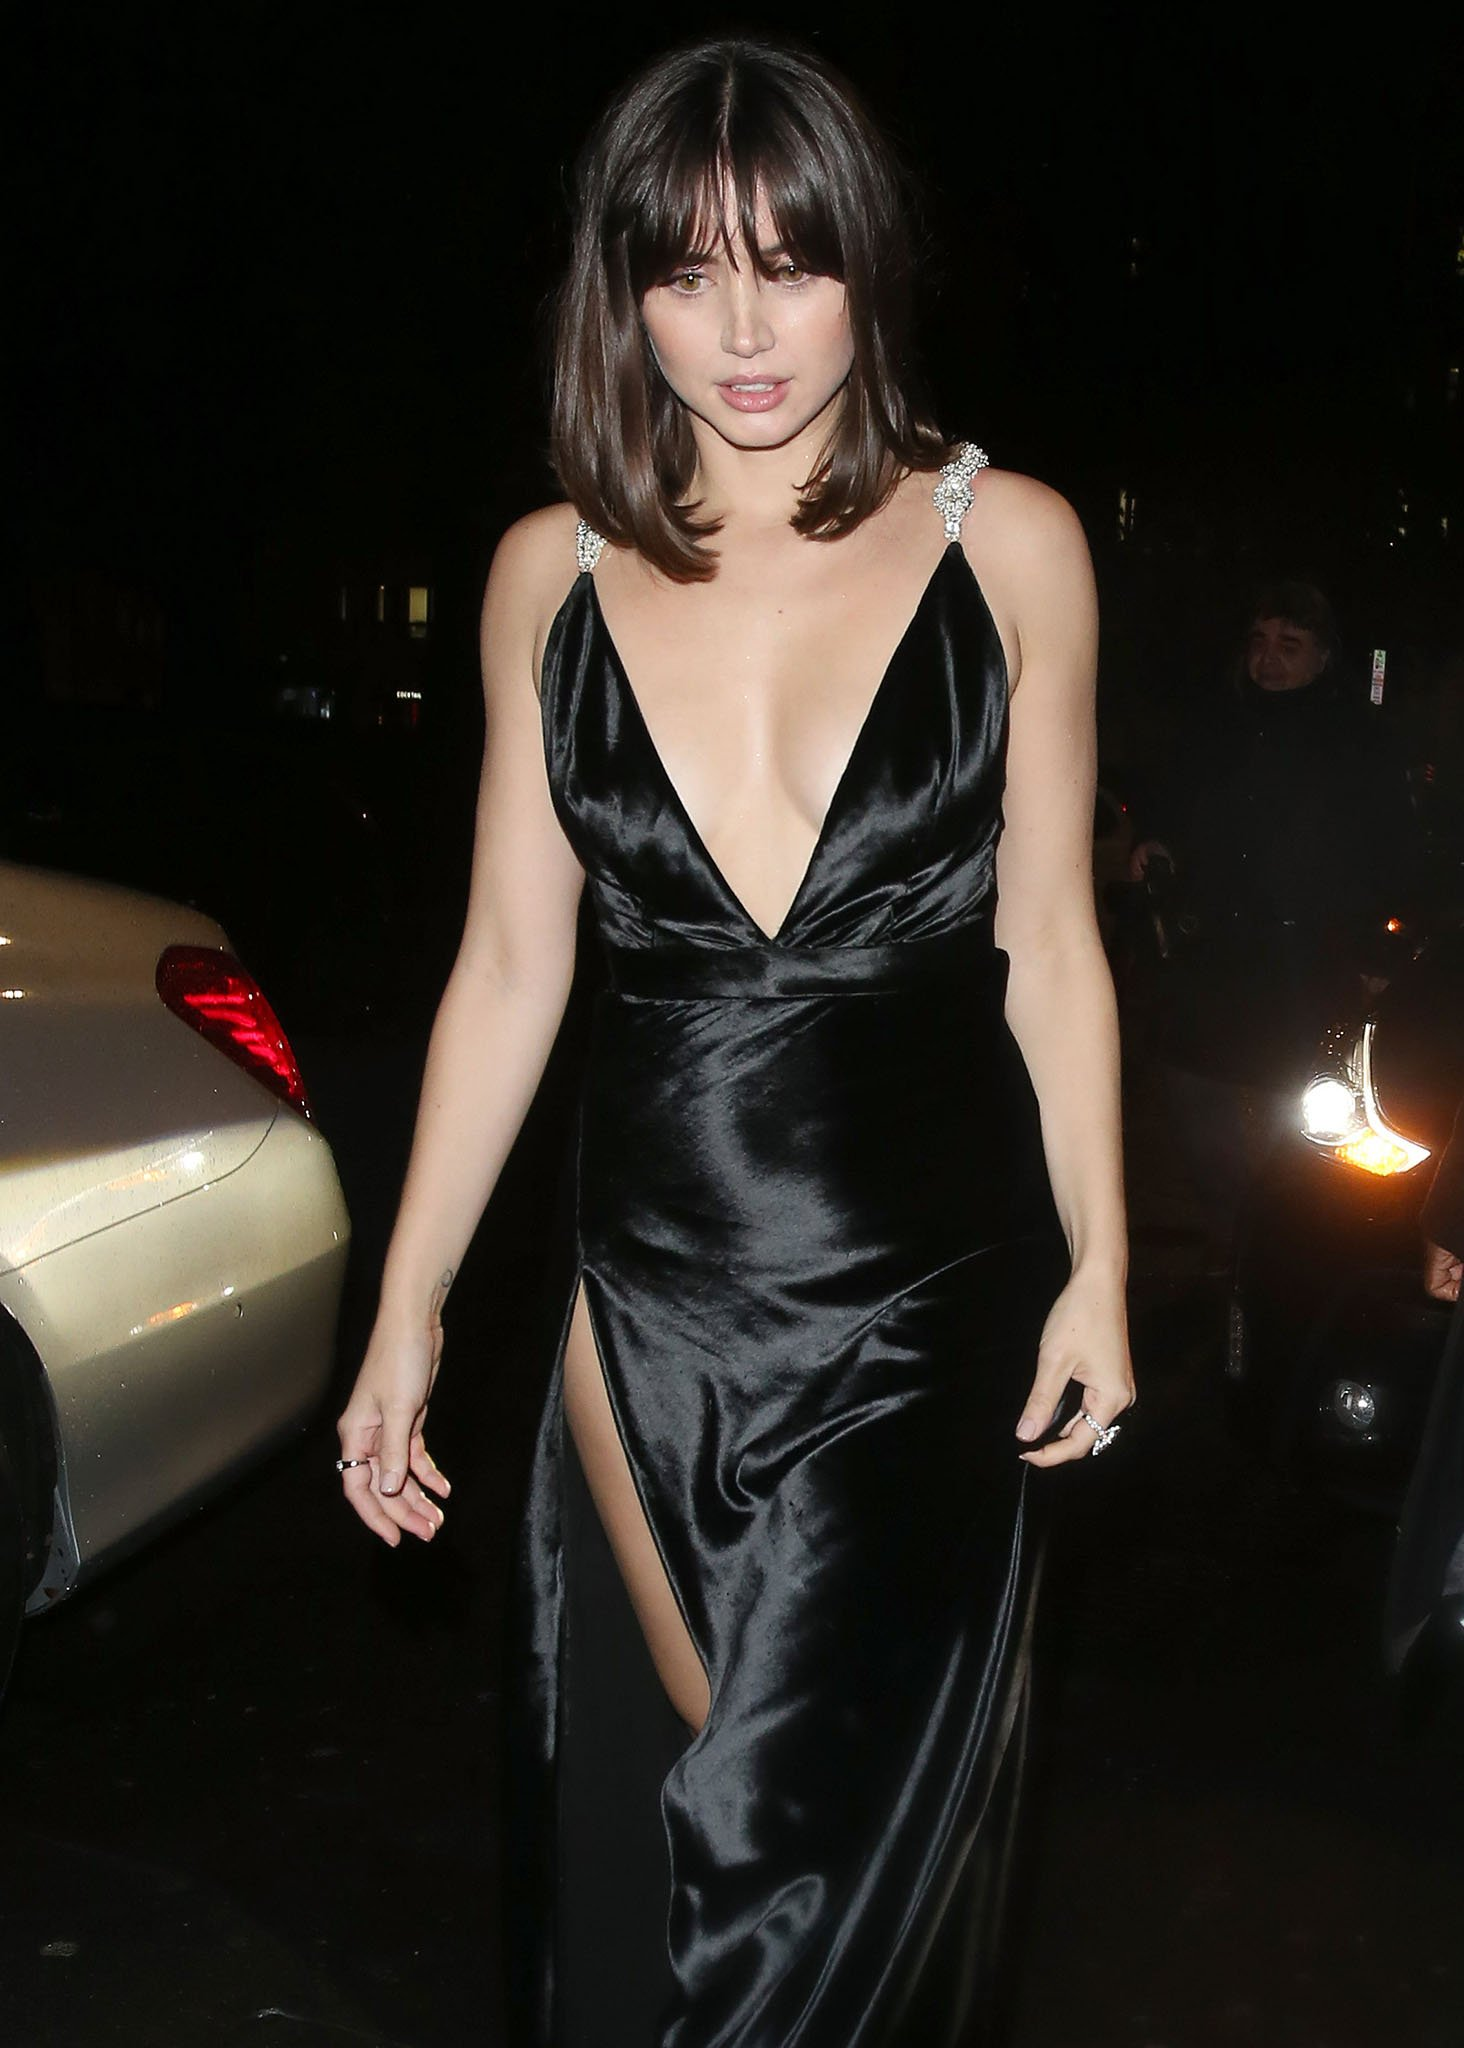 Inspired by Michelle Pfeiffer's Scarface look, Ana de Armas' makeup features soft smokey eyes and nude lips